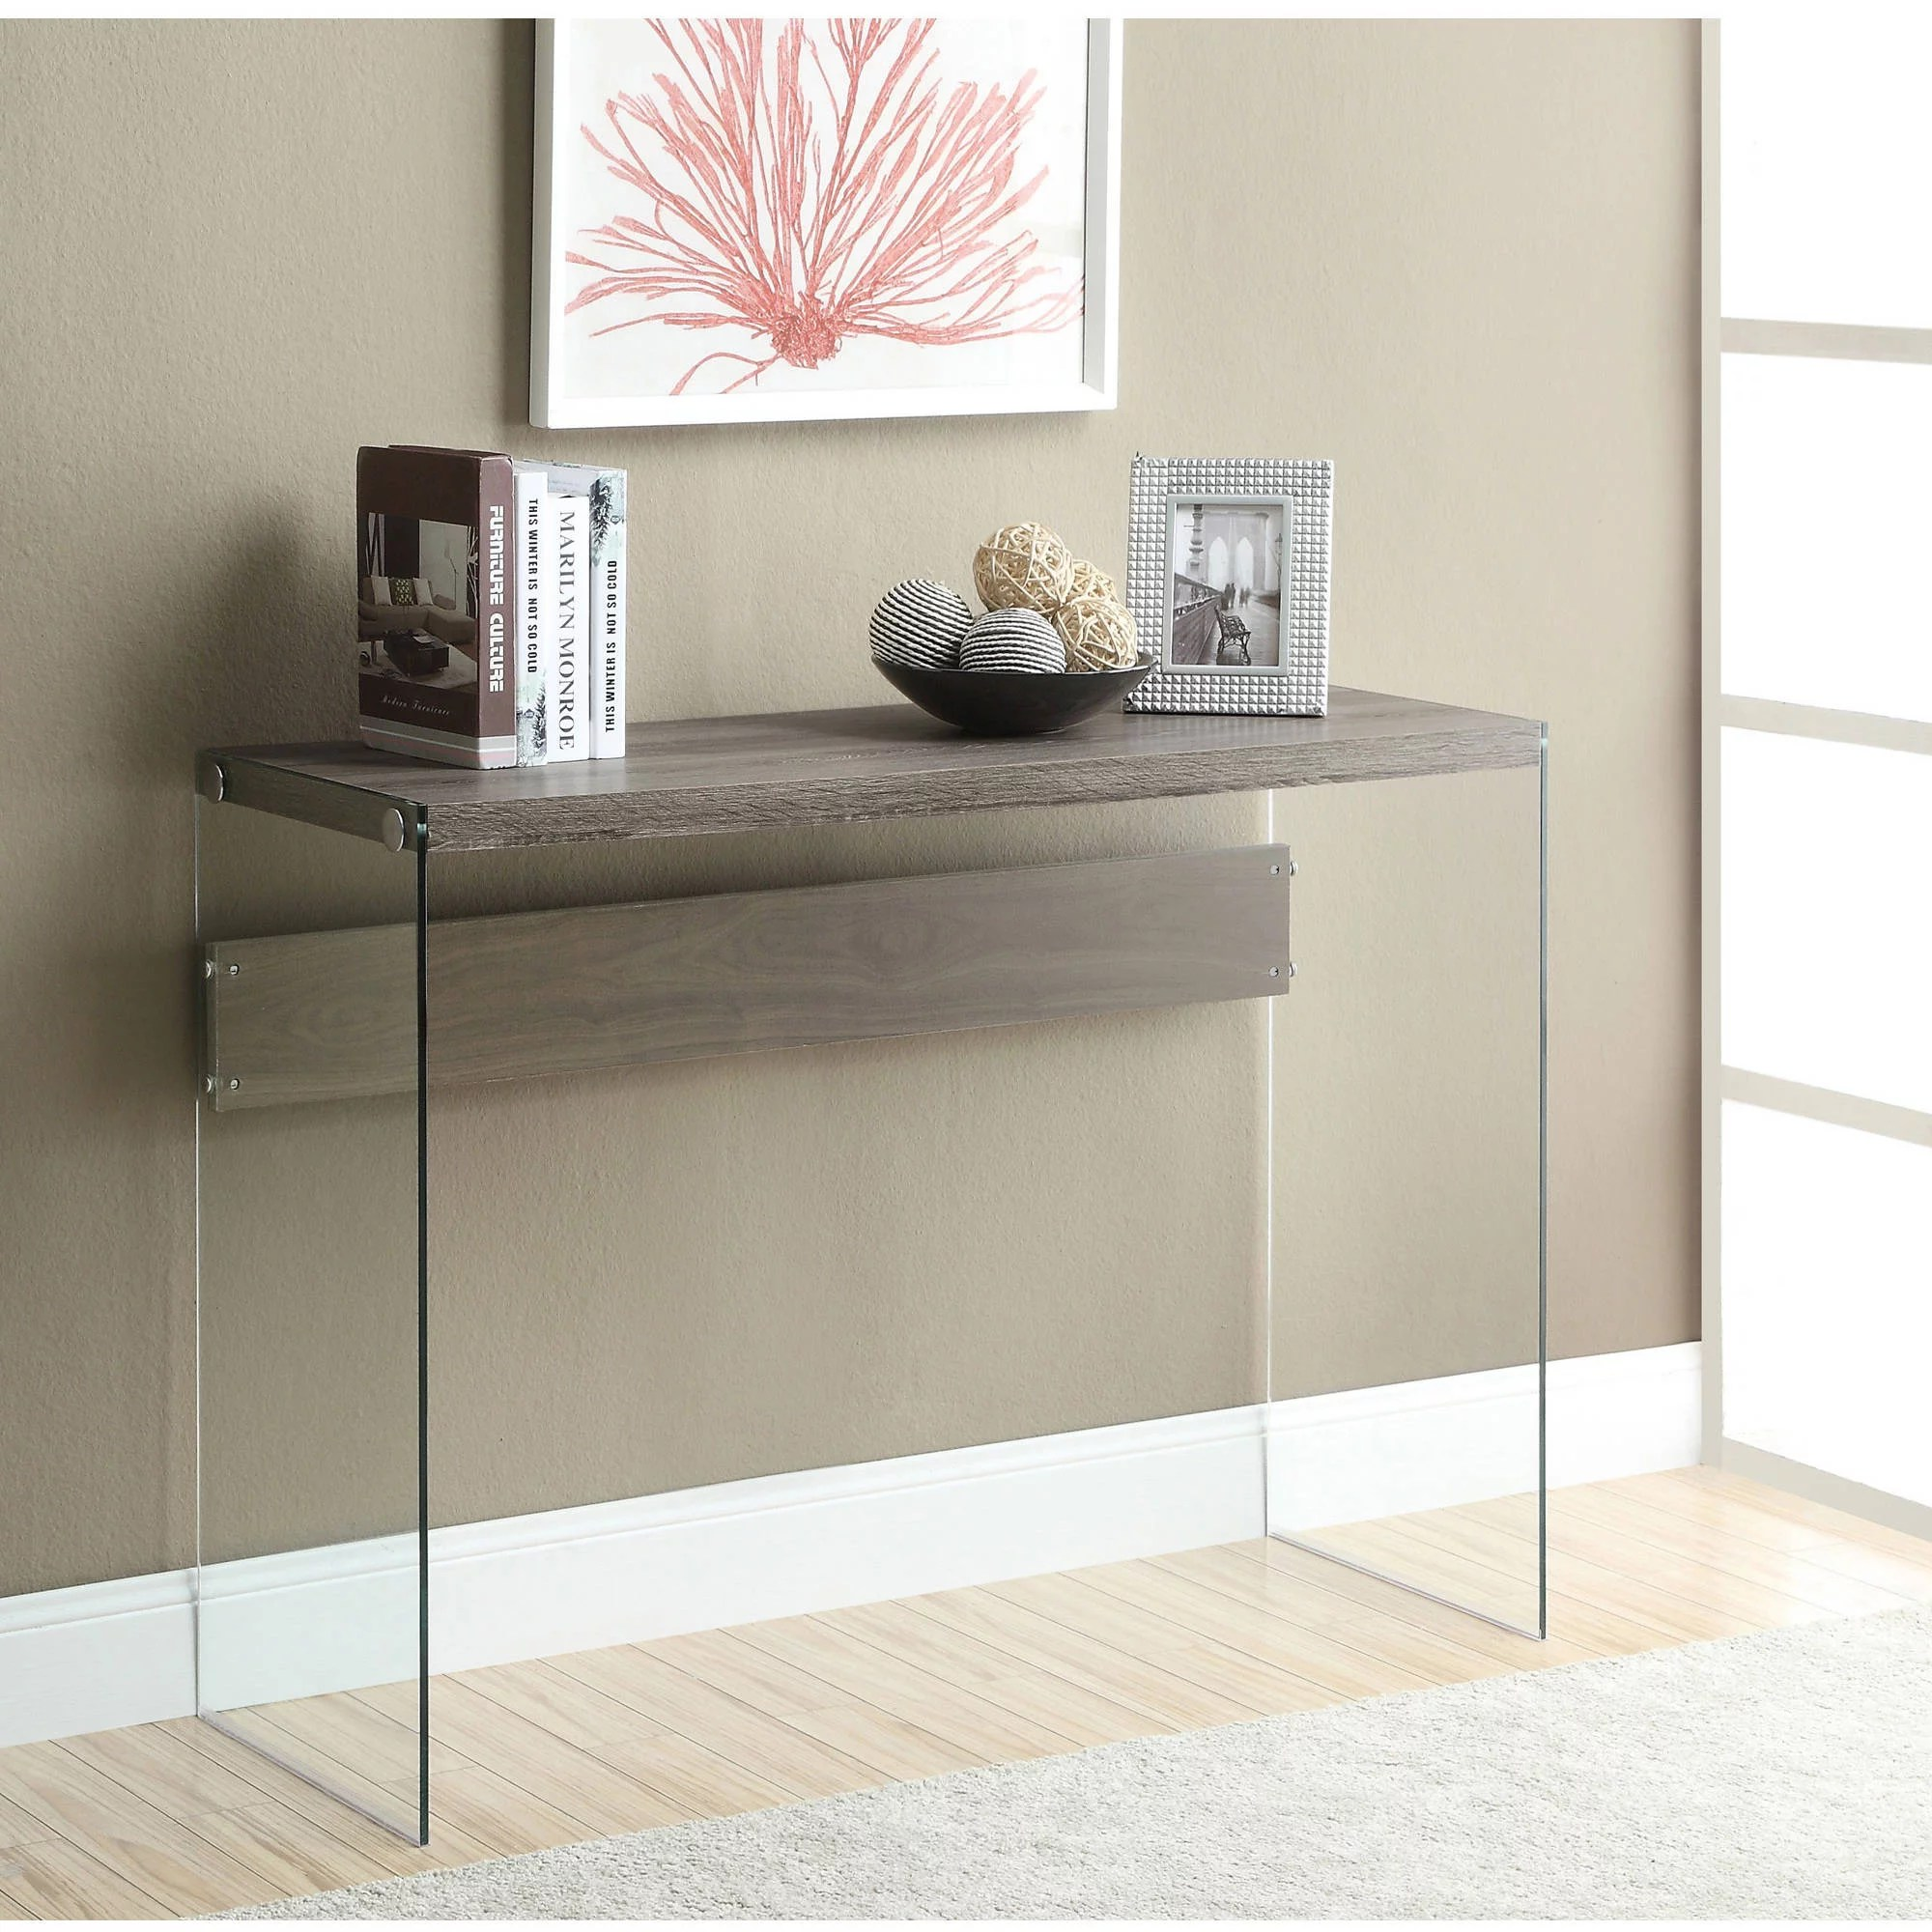 Glass Sofa Table Decor Monarch Console Table Dark Taupe With Tempered Glass